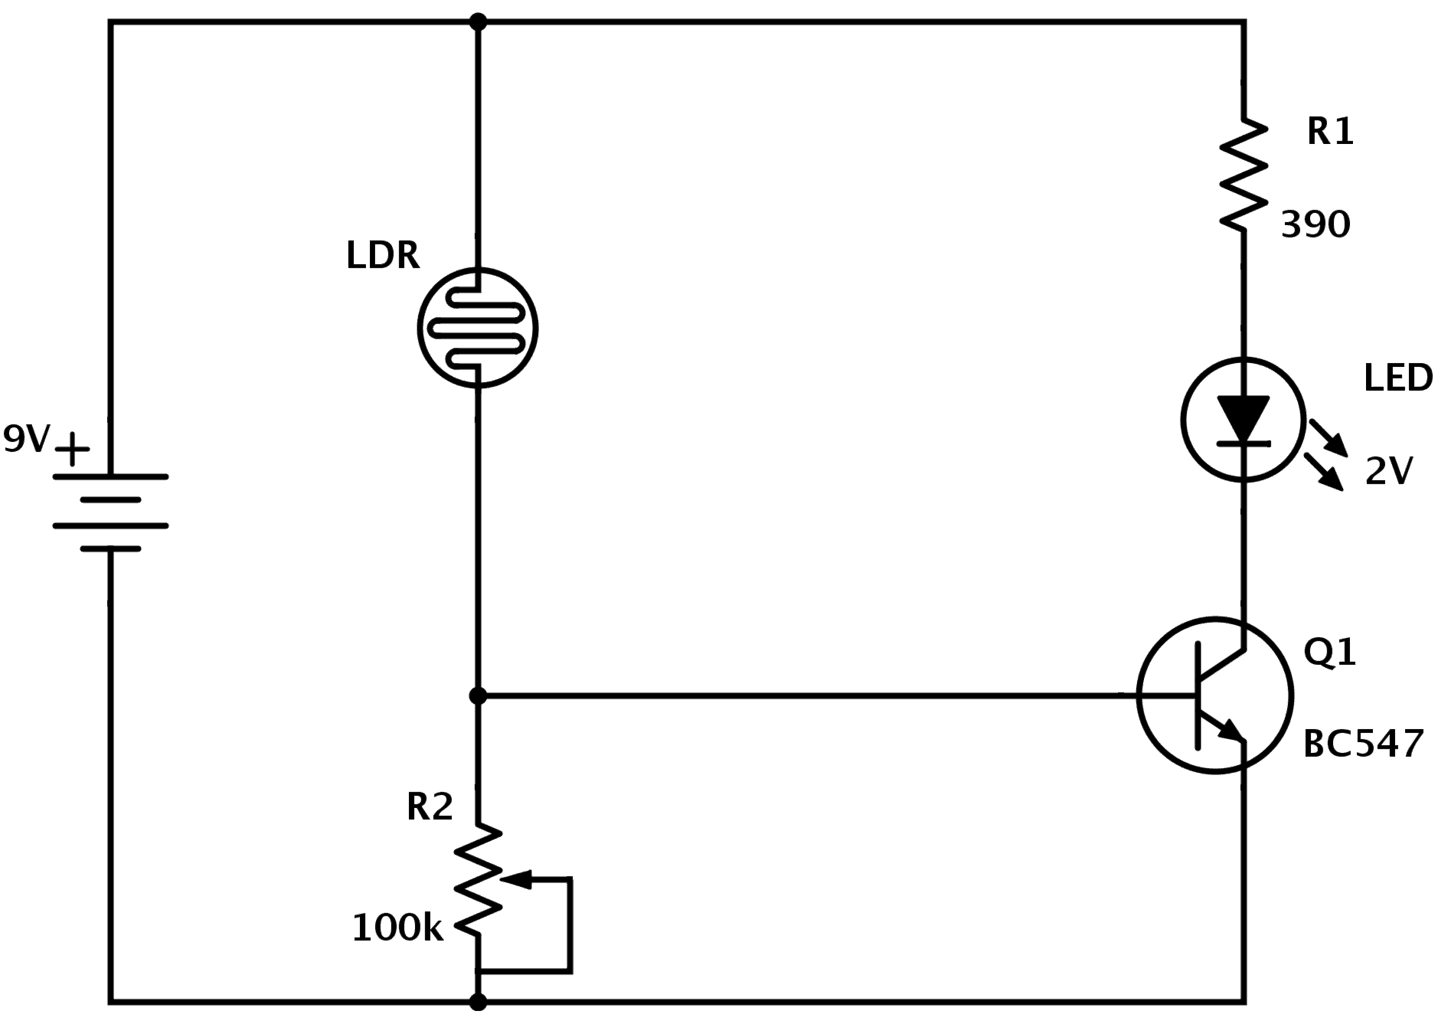 Ldr Circuit Diagram Build Electronic Circuits Breaker For Model Railroad Electronics Forums